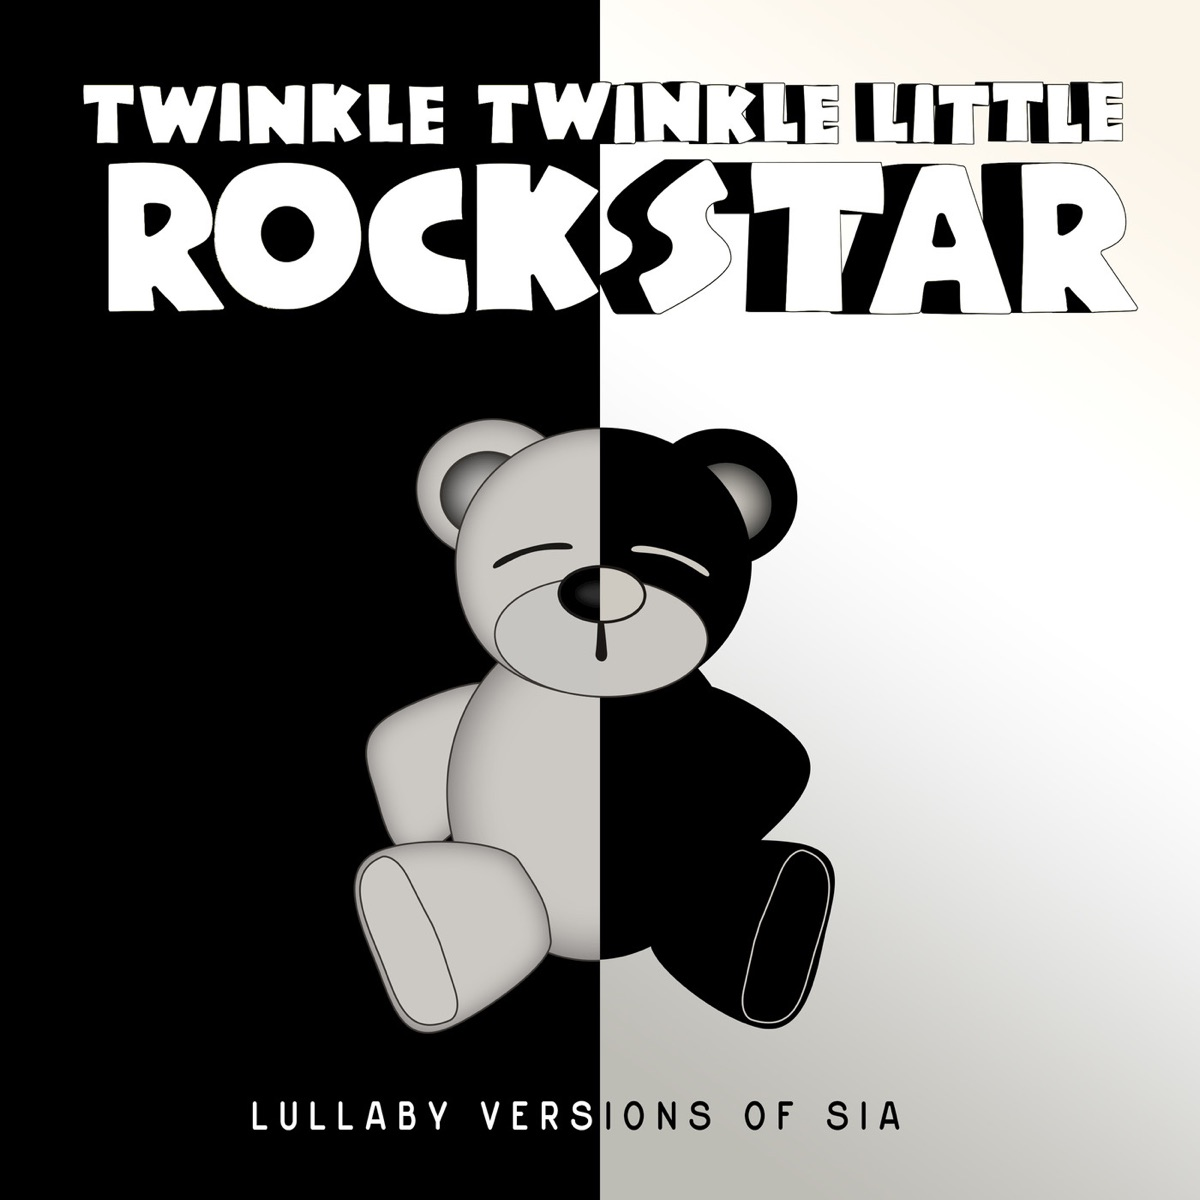 Lullaby Versions of Sia Twinkle Twinkle Little Rock Star CD cover